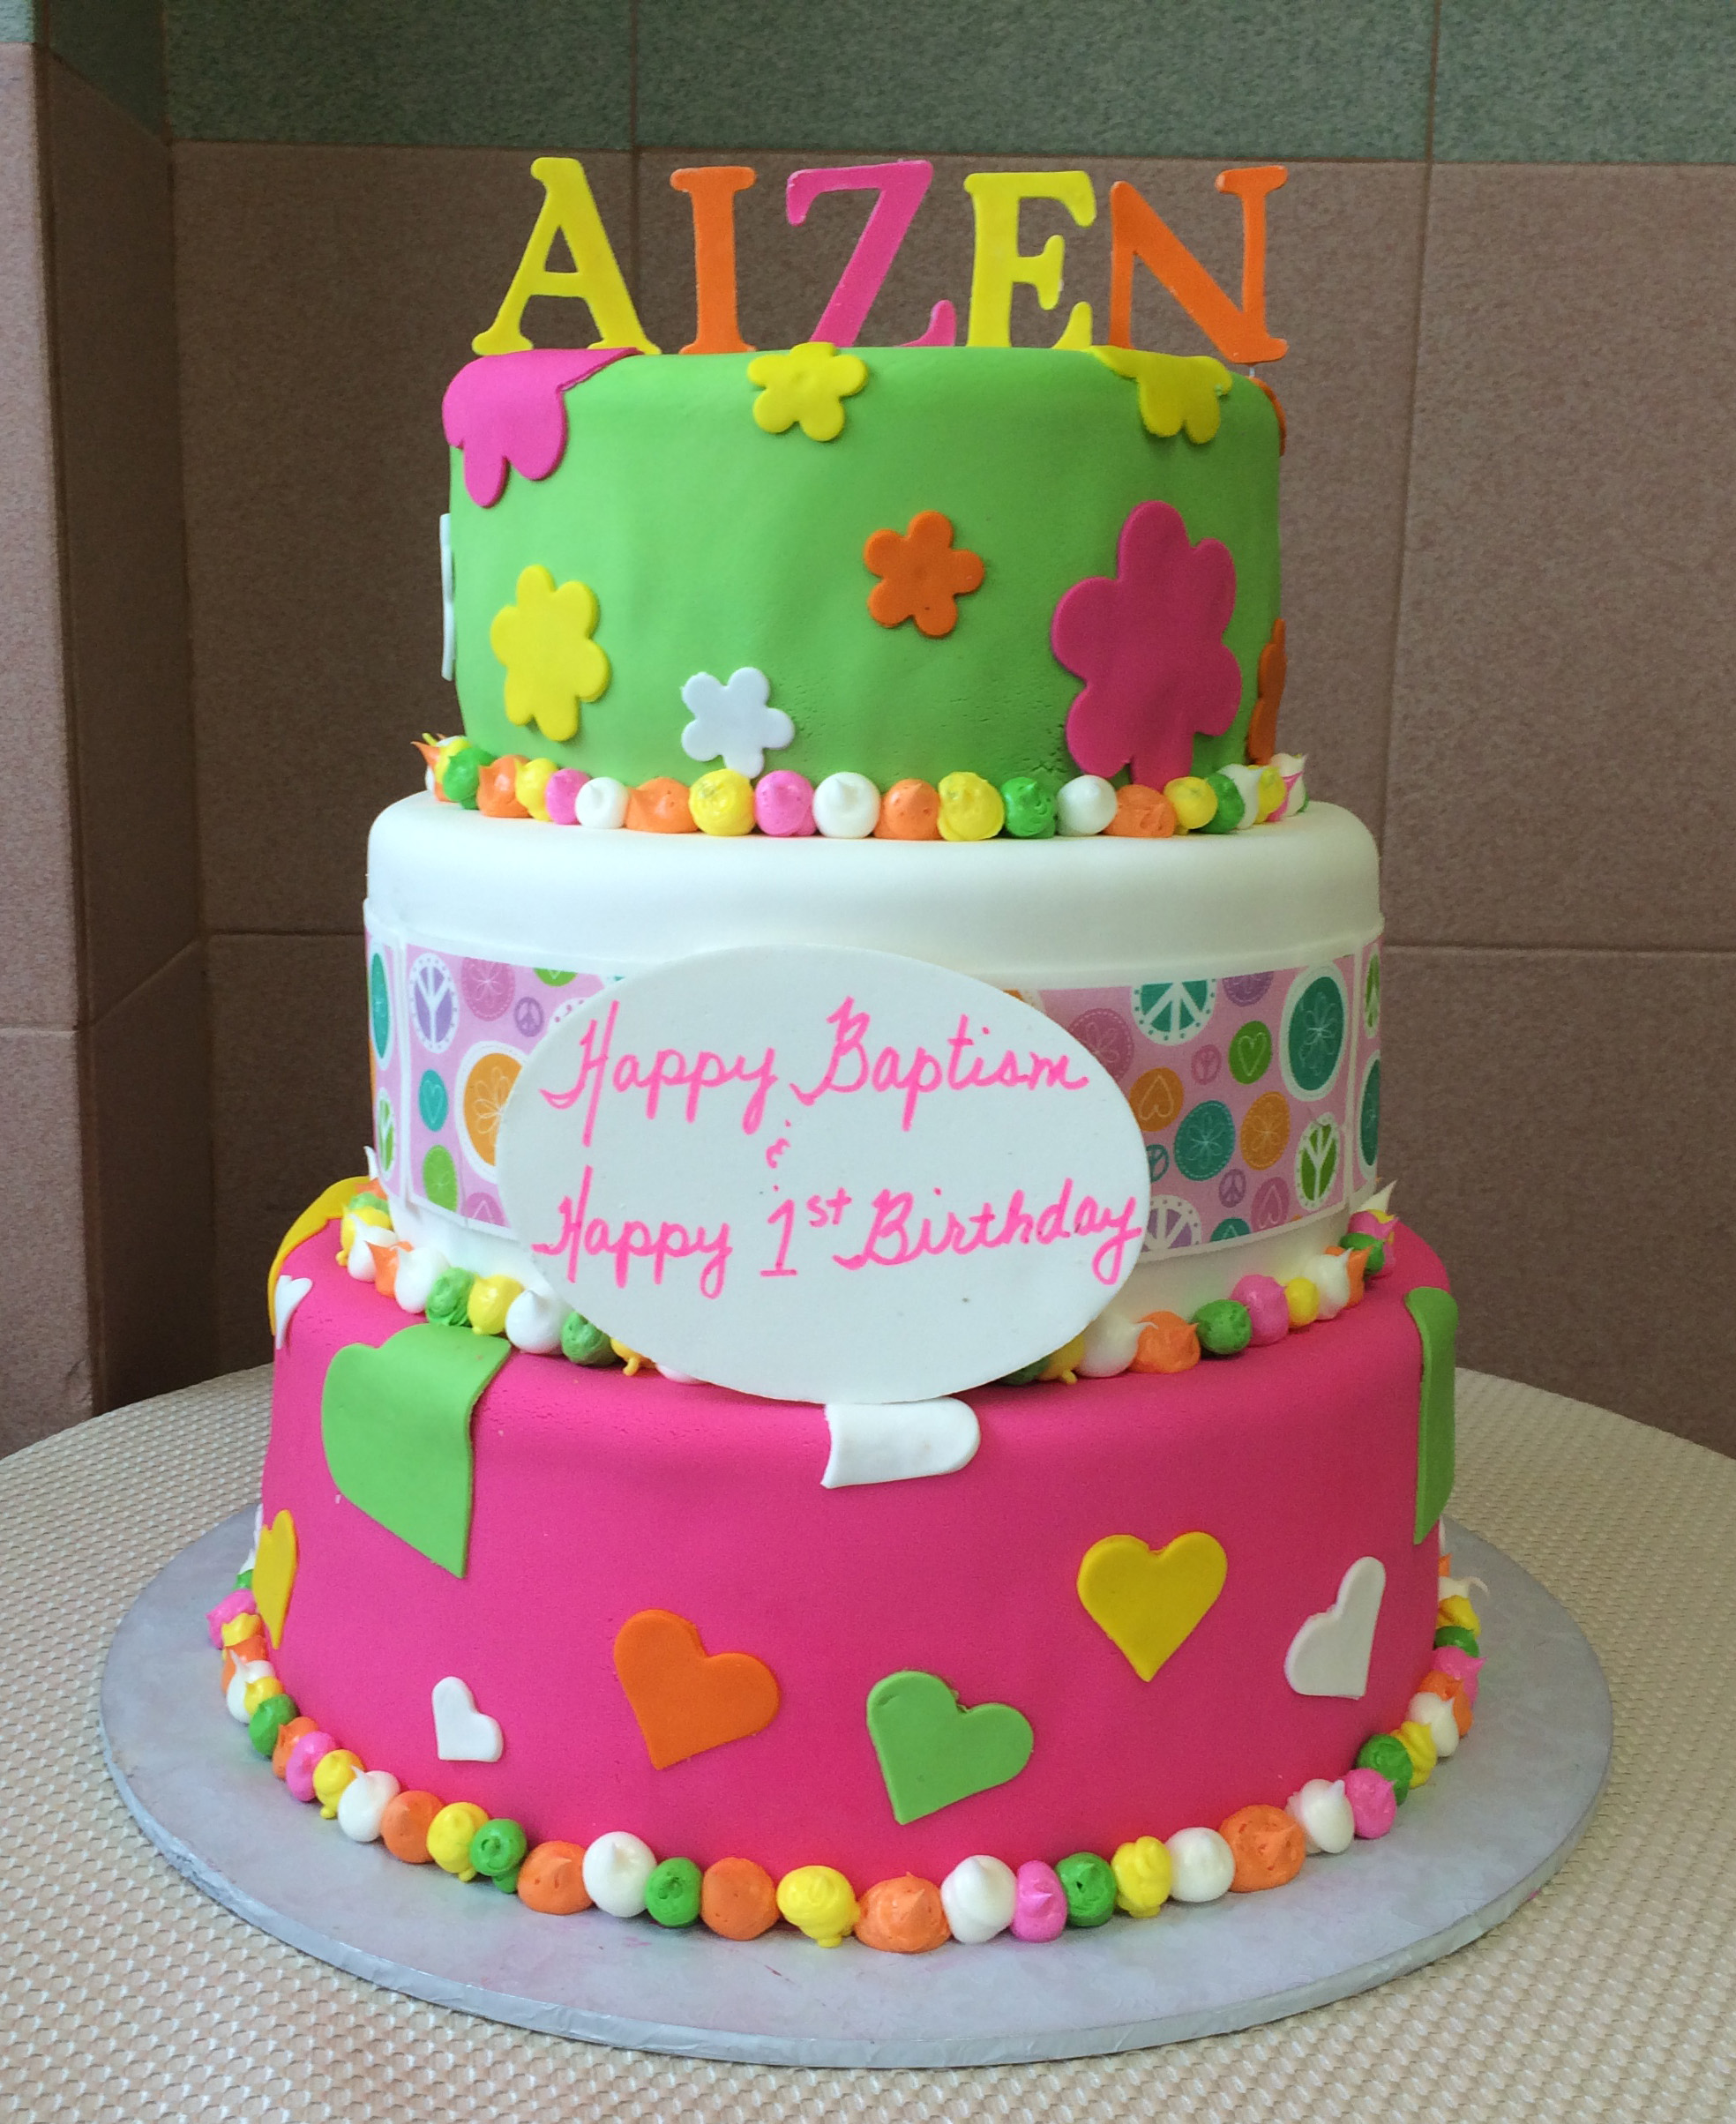 Rolled Fondant in Color, Hearts, & Posie Cut-Outs, with Multicolor Butter Cream Border. Standing Rolled Fondant Letters